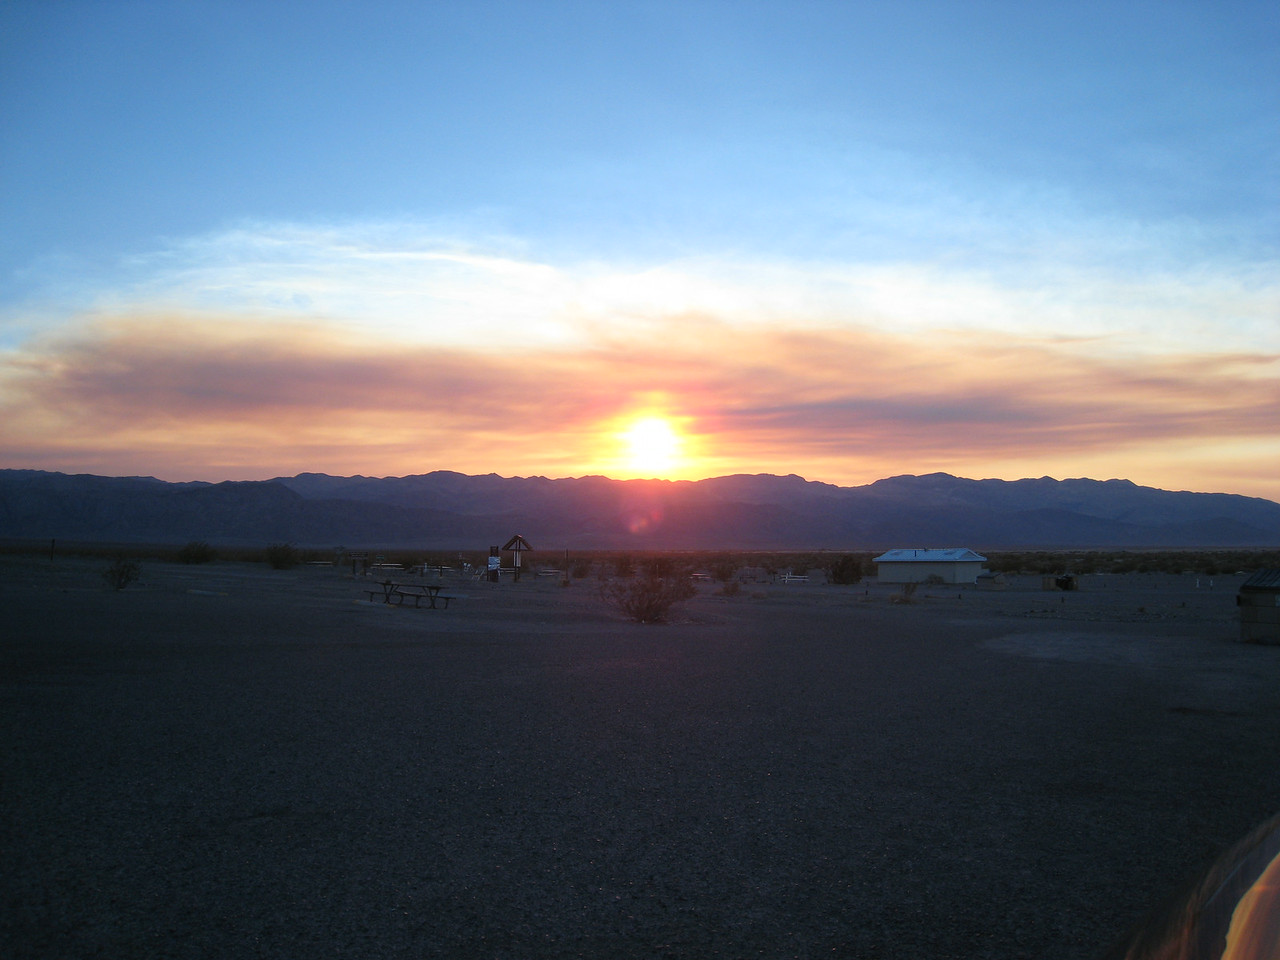 Sunset at Furnace Creek.